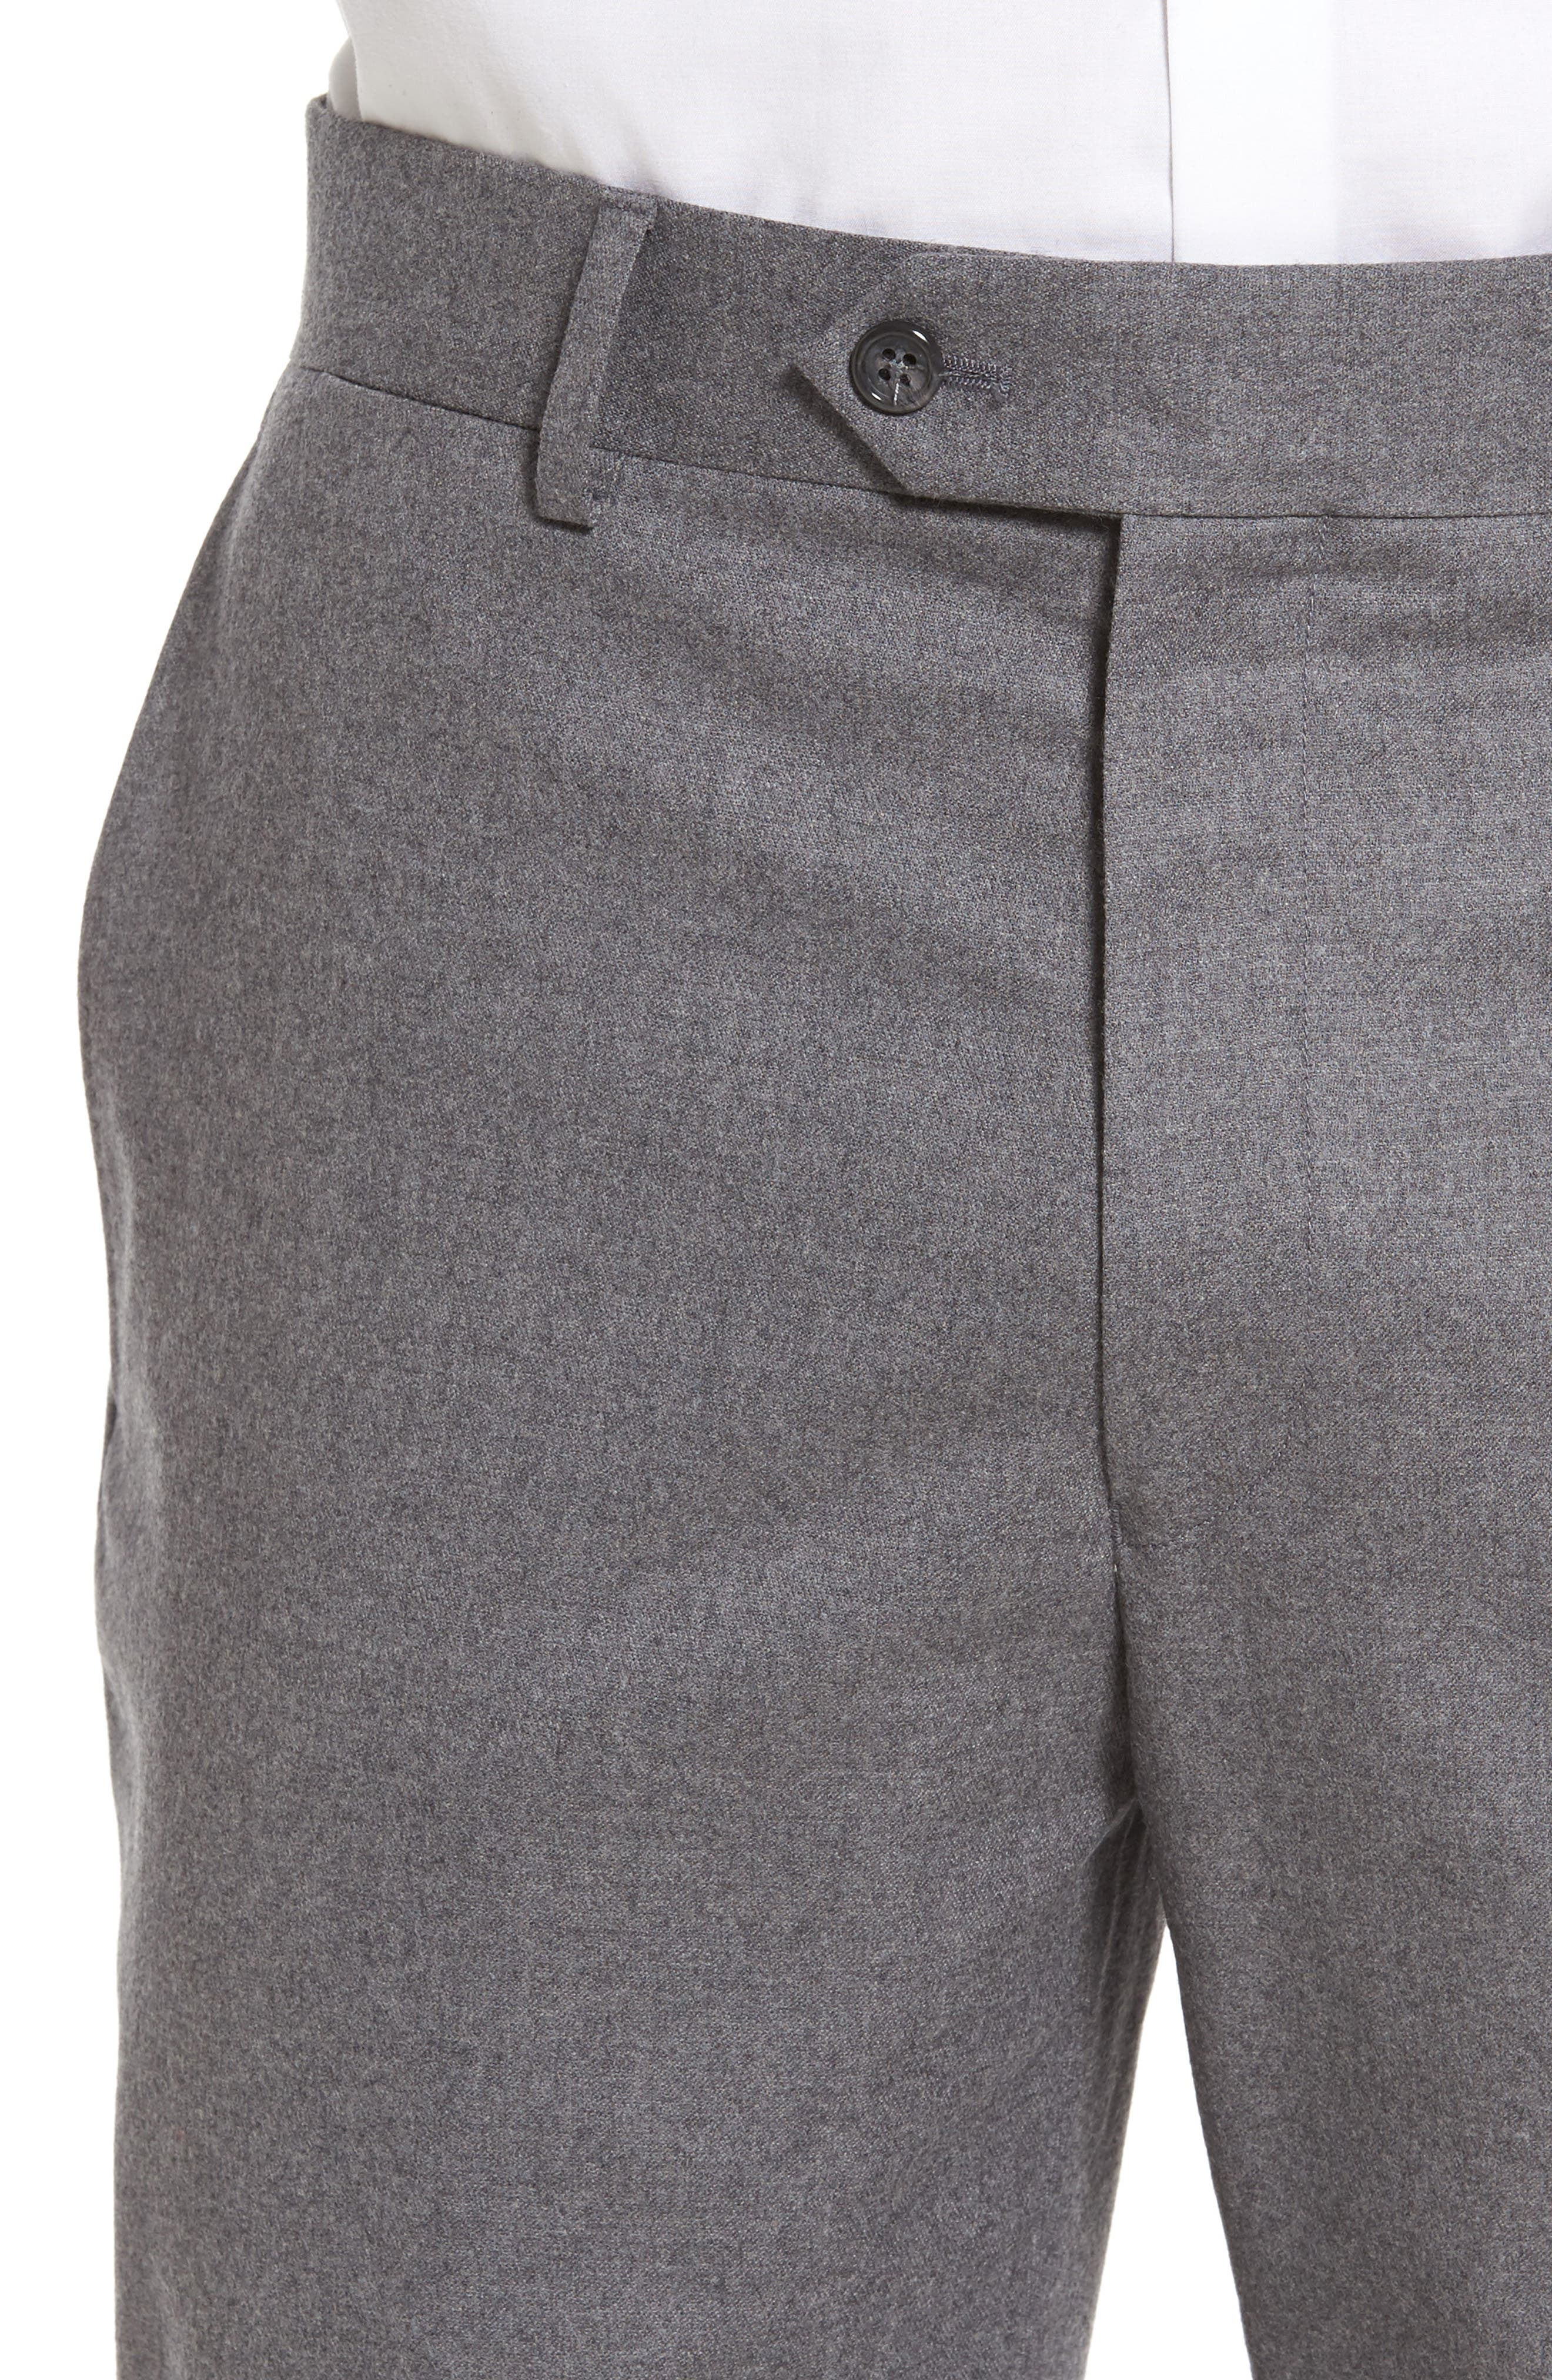 Sutton Flat Front Stretch Wool Trousers,                             Alternate thumbnail 5, color,